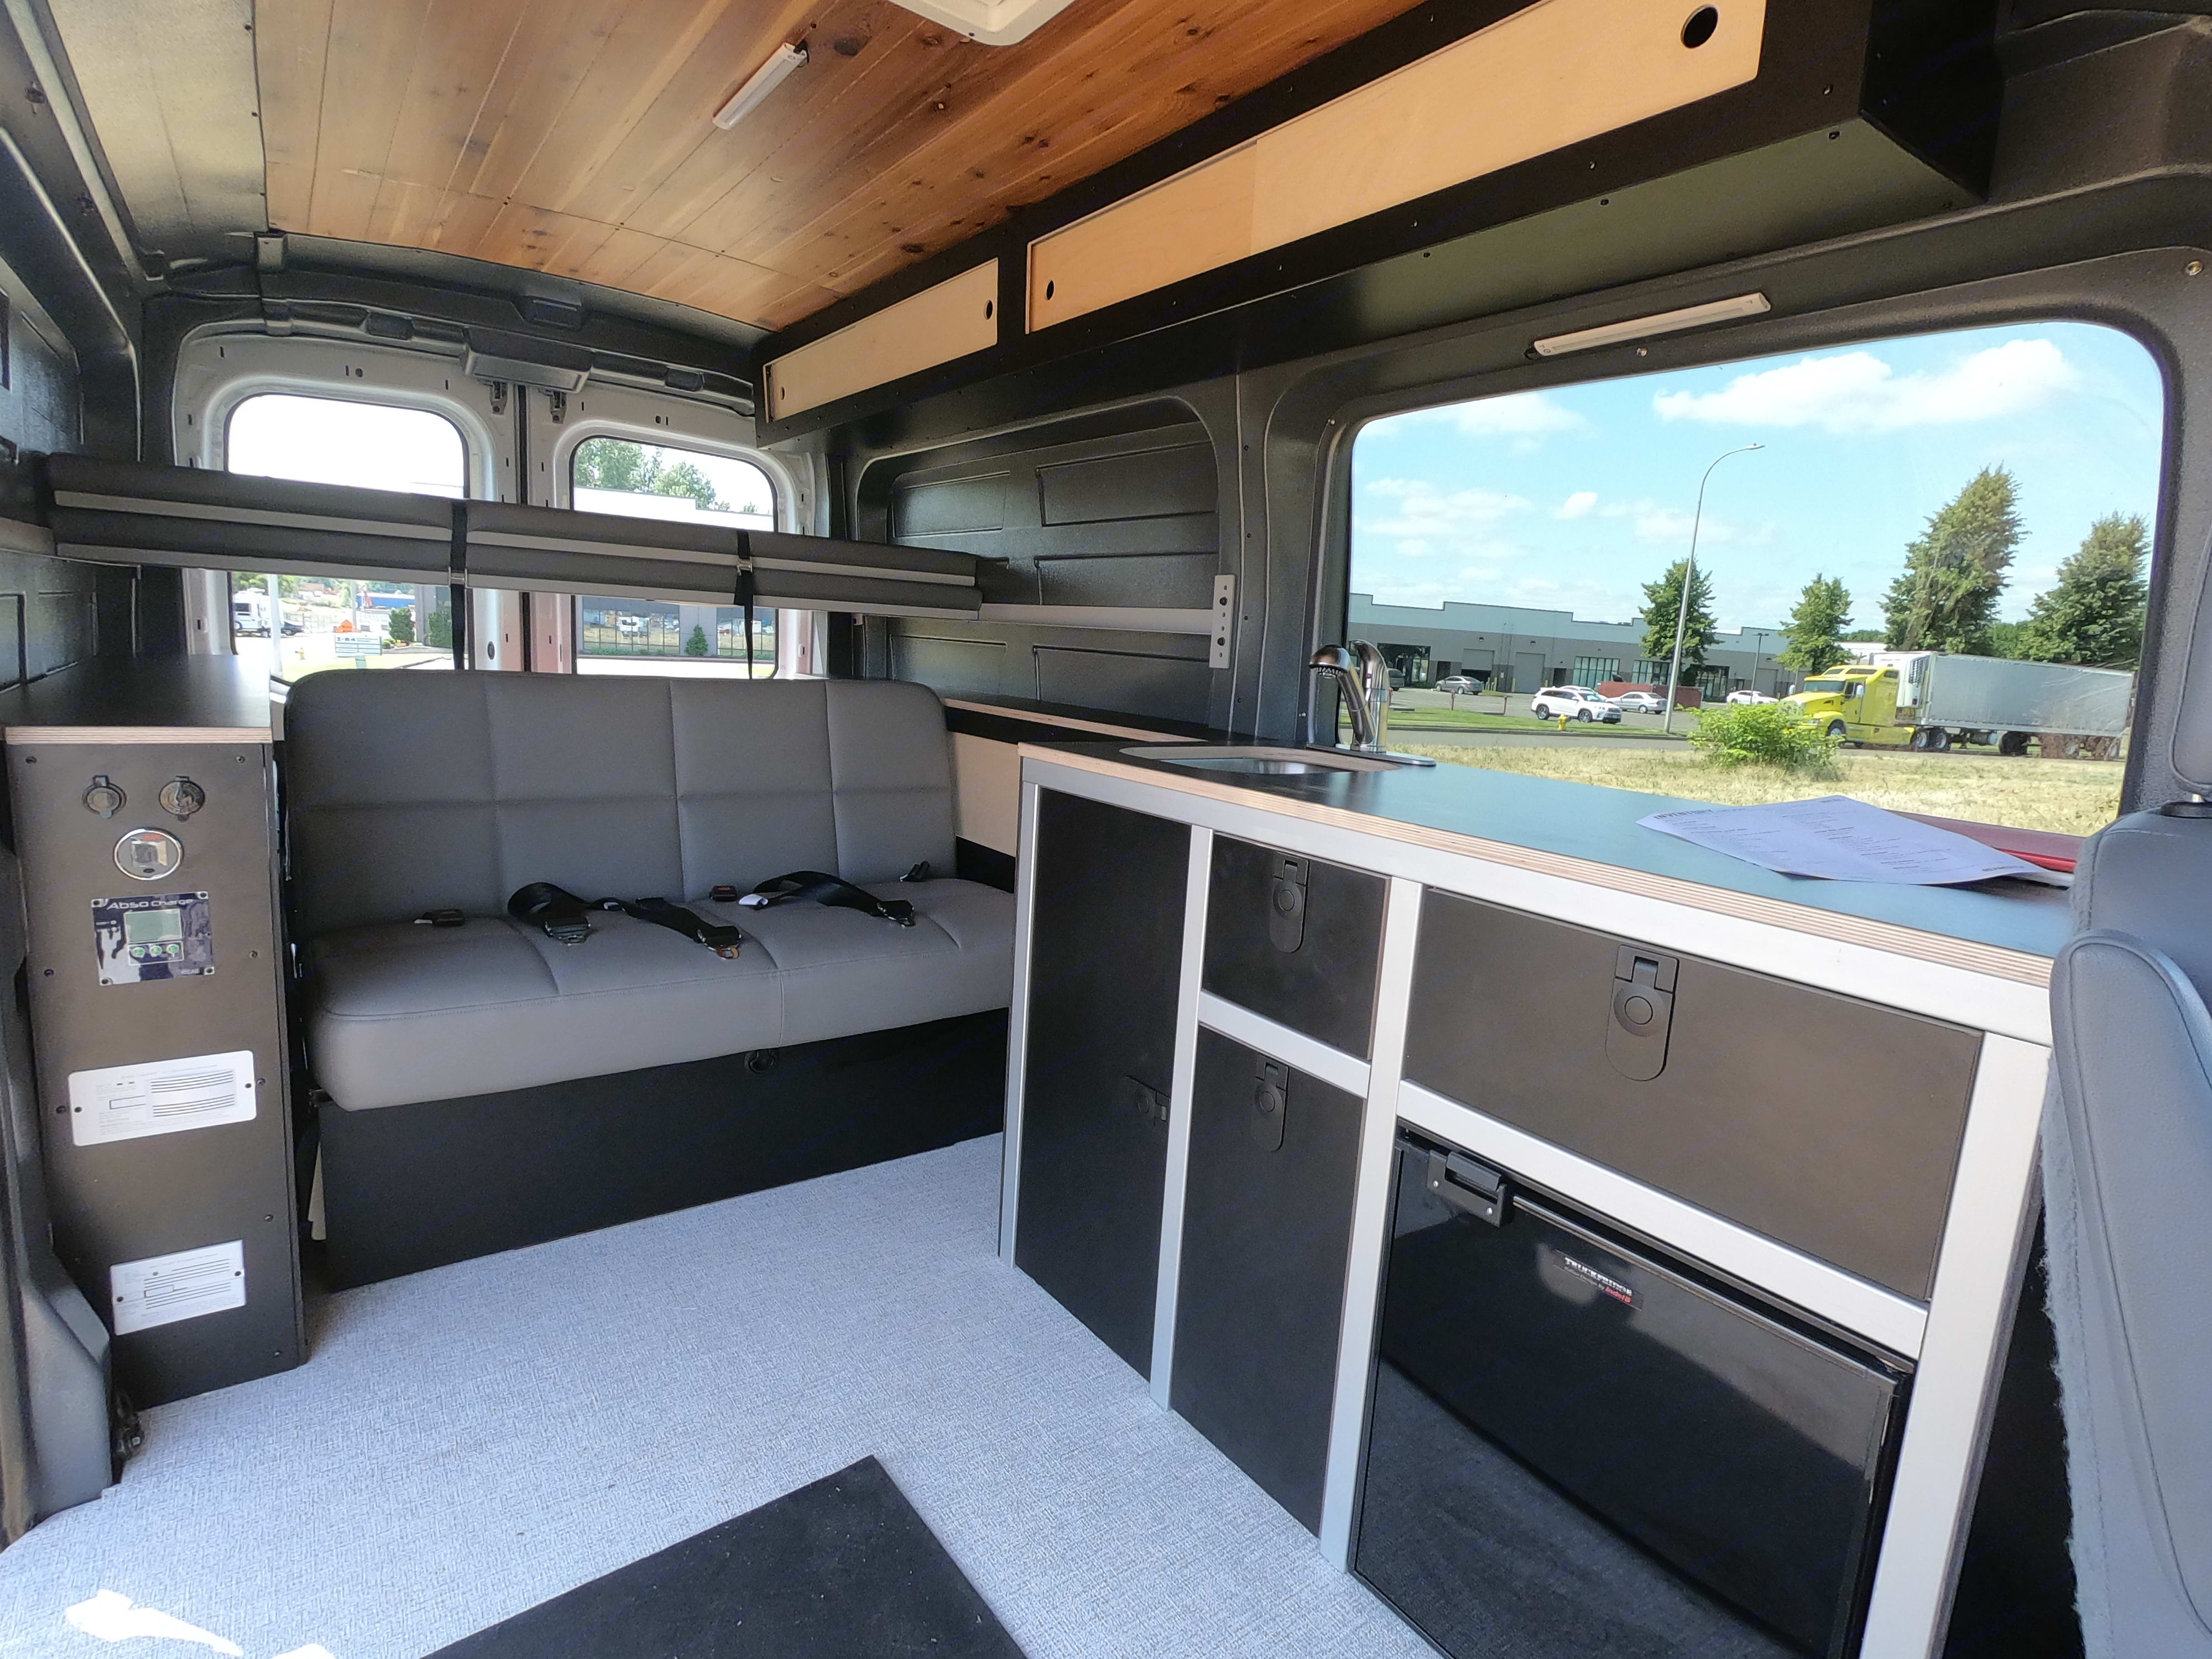 Interior view of bench seat with 3 seat belts and kitchen. Ford Transit 2018